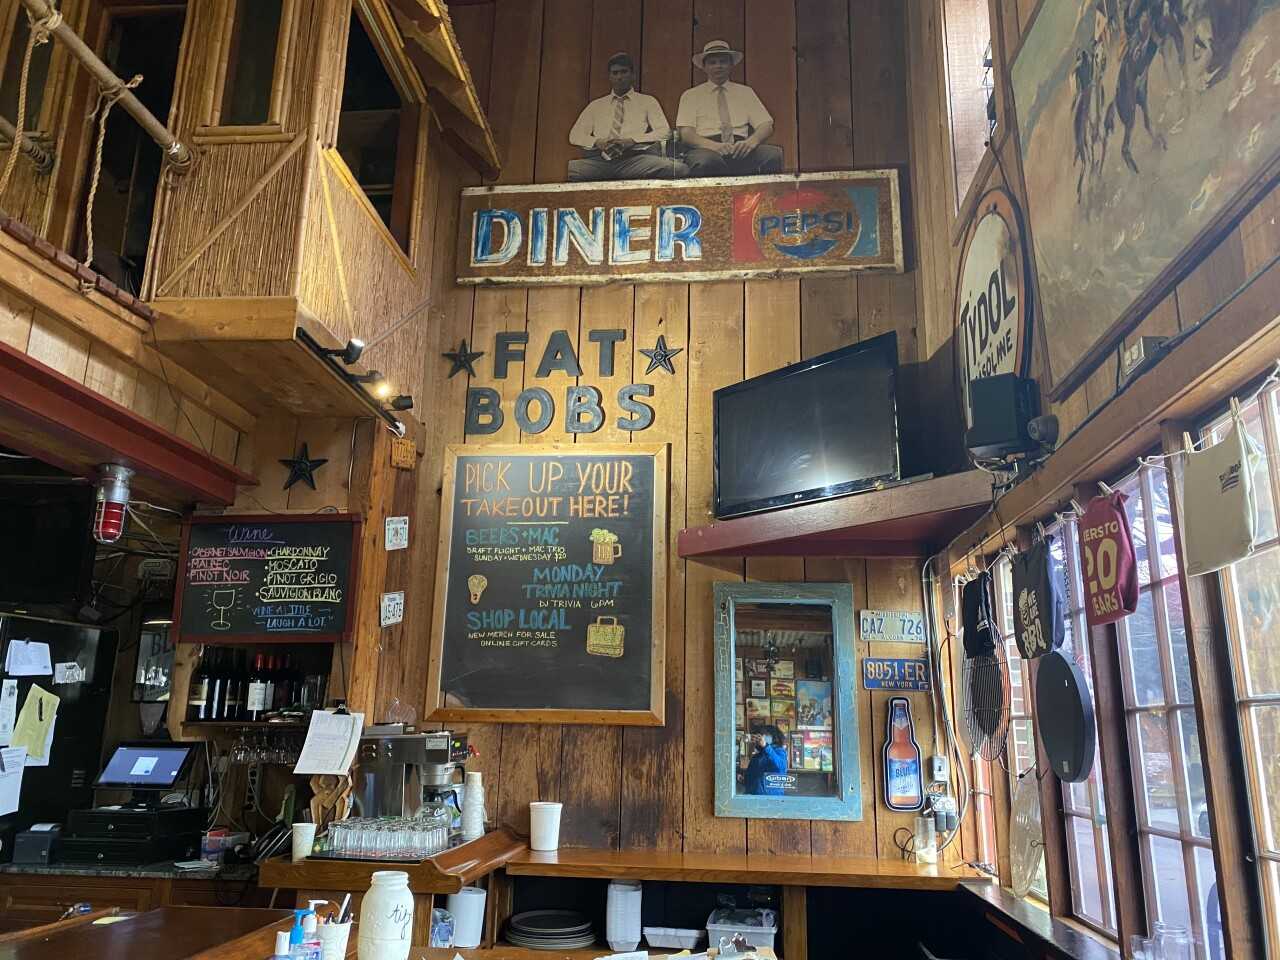 Fat Bob's is focusing mostly on takeout this holiday season